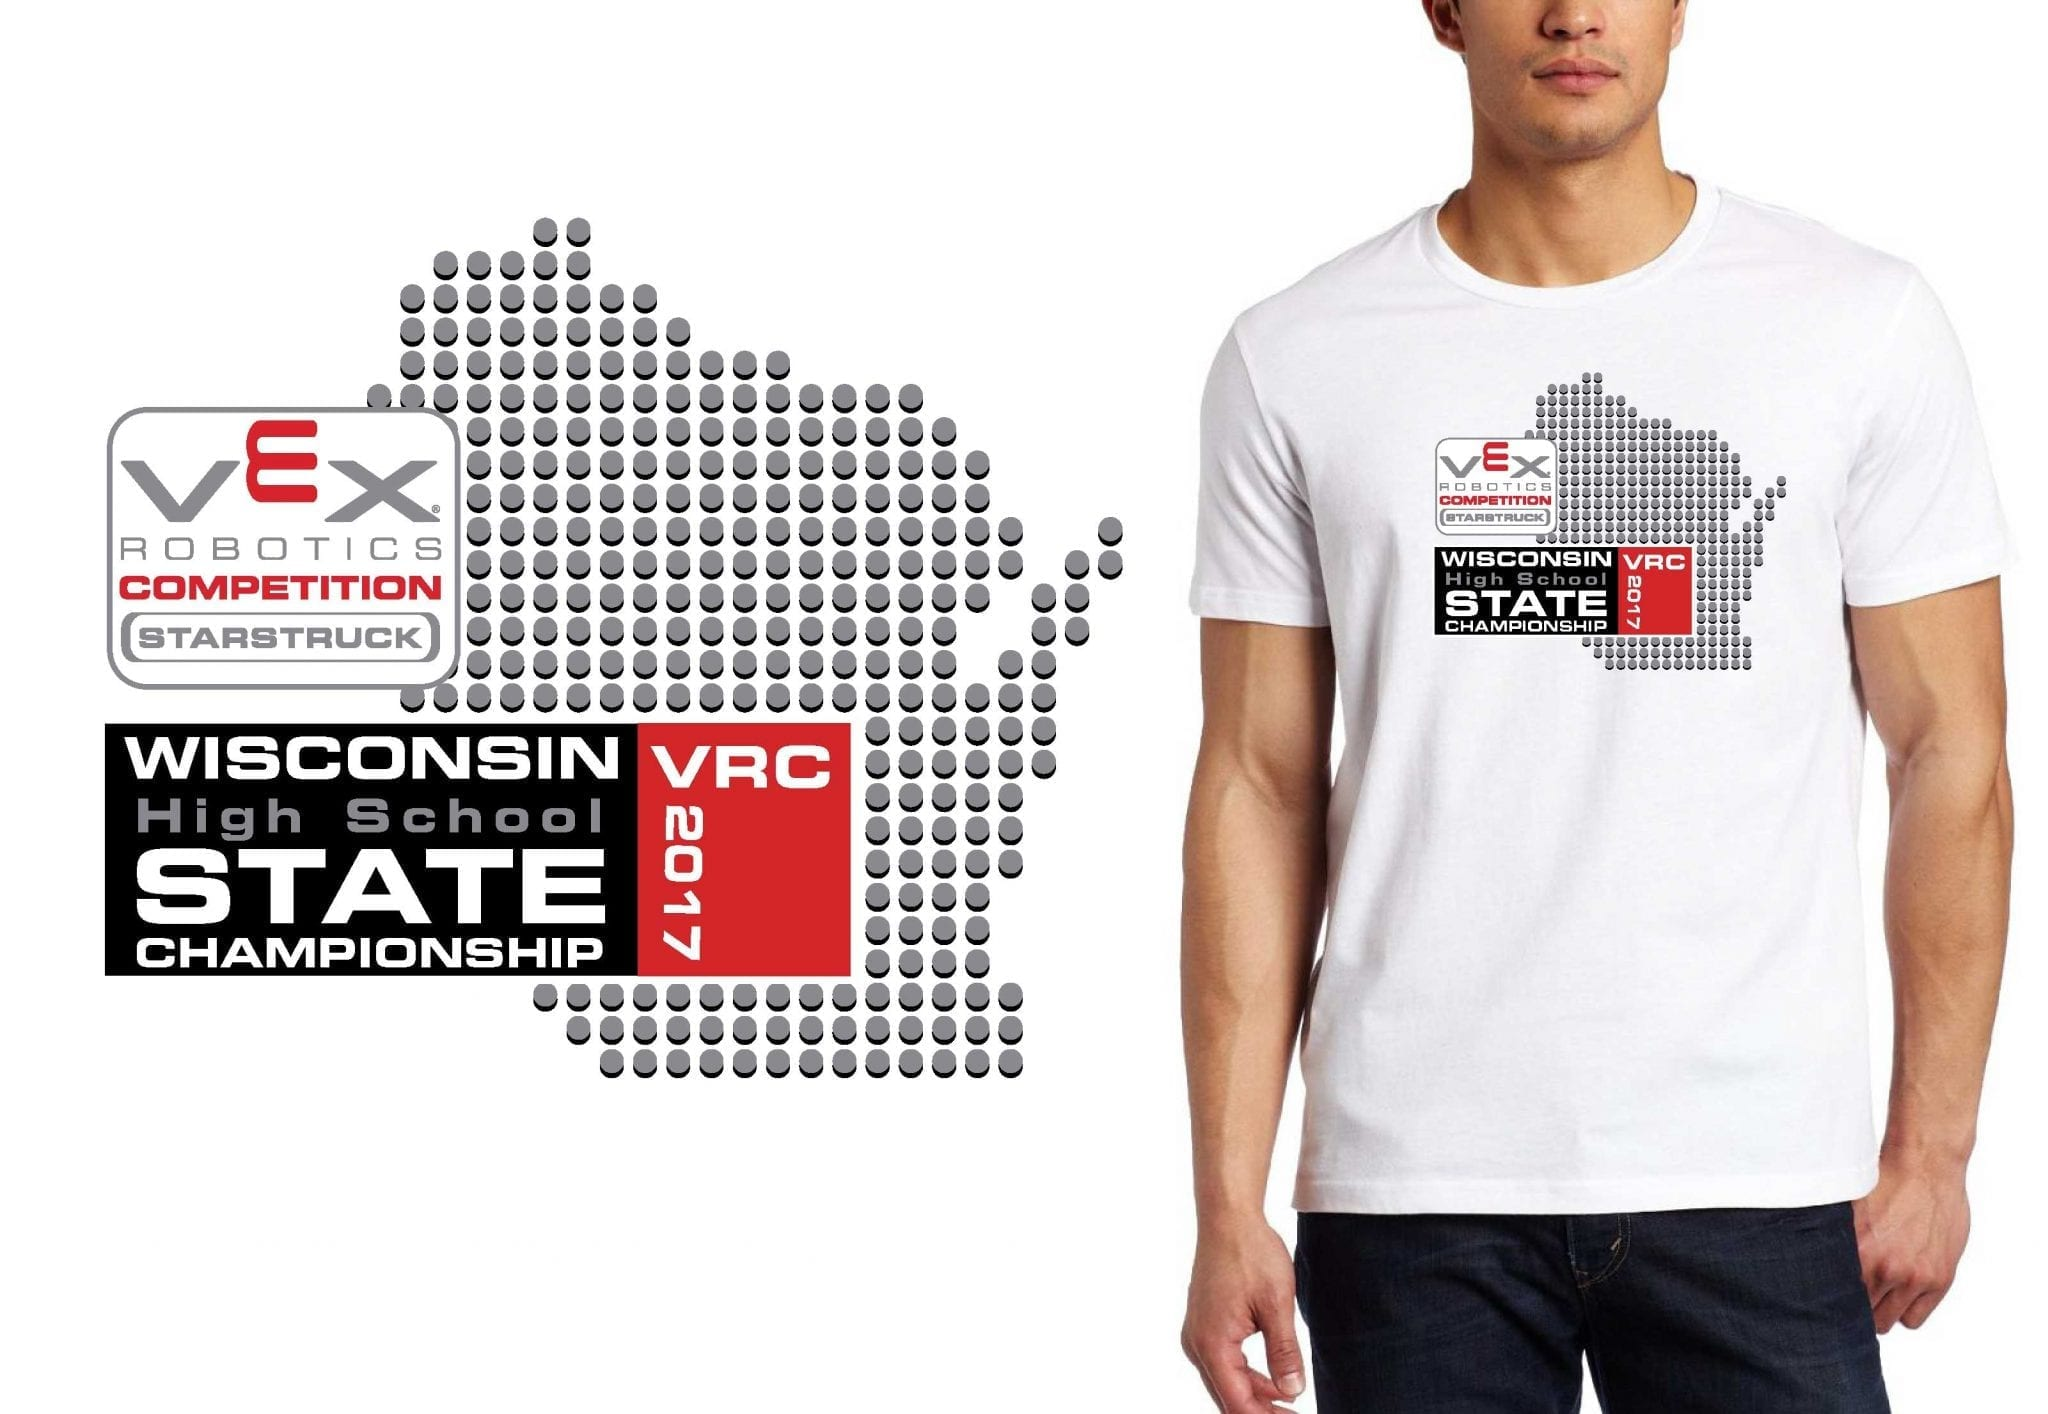 ROBOTICS LOGO for Wisconsin-VRC-High-School-State T-SHIRT UrArtStudio